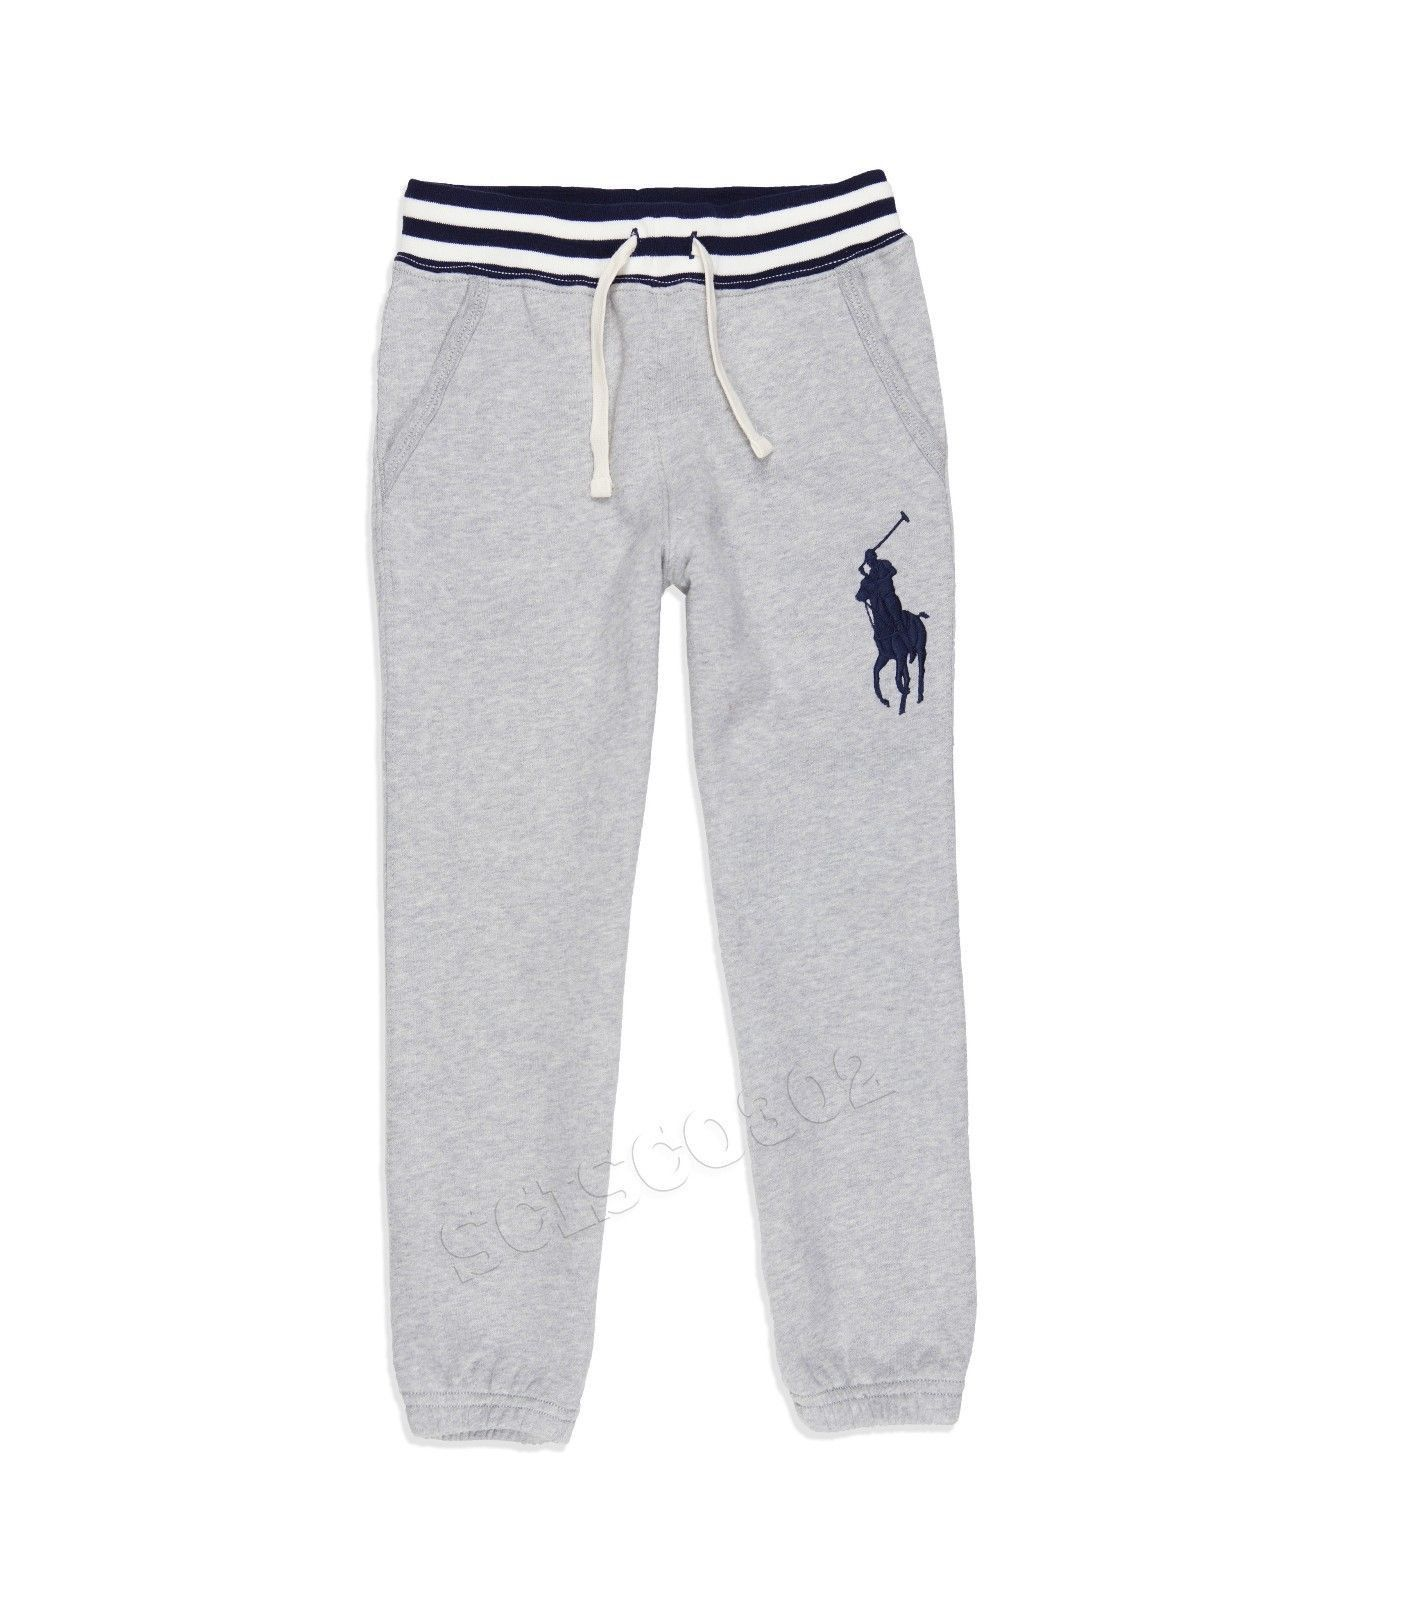 $22 Polo Ralph Lauren Sweatpants Joggers Gray